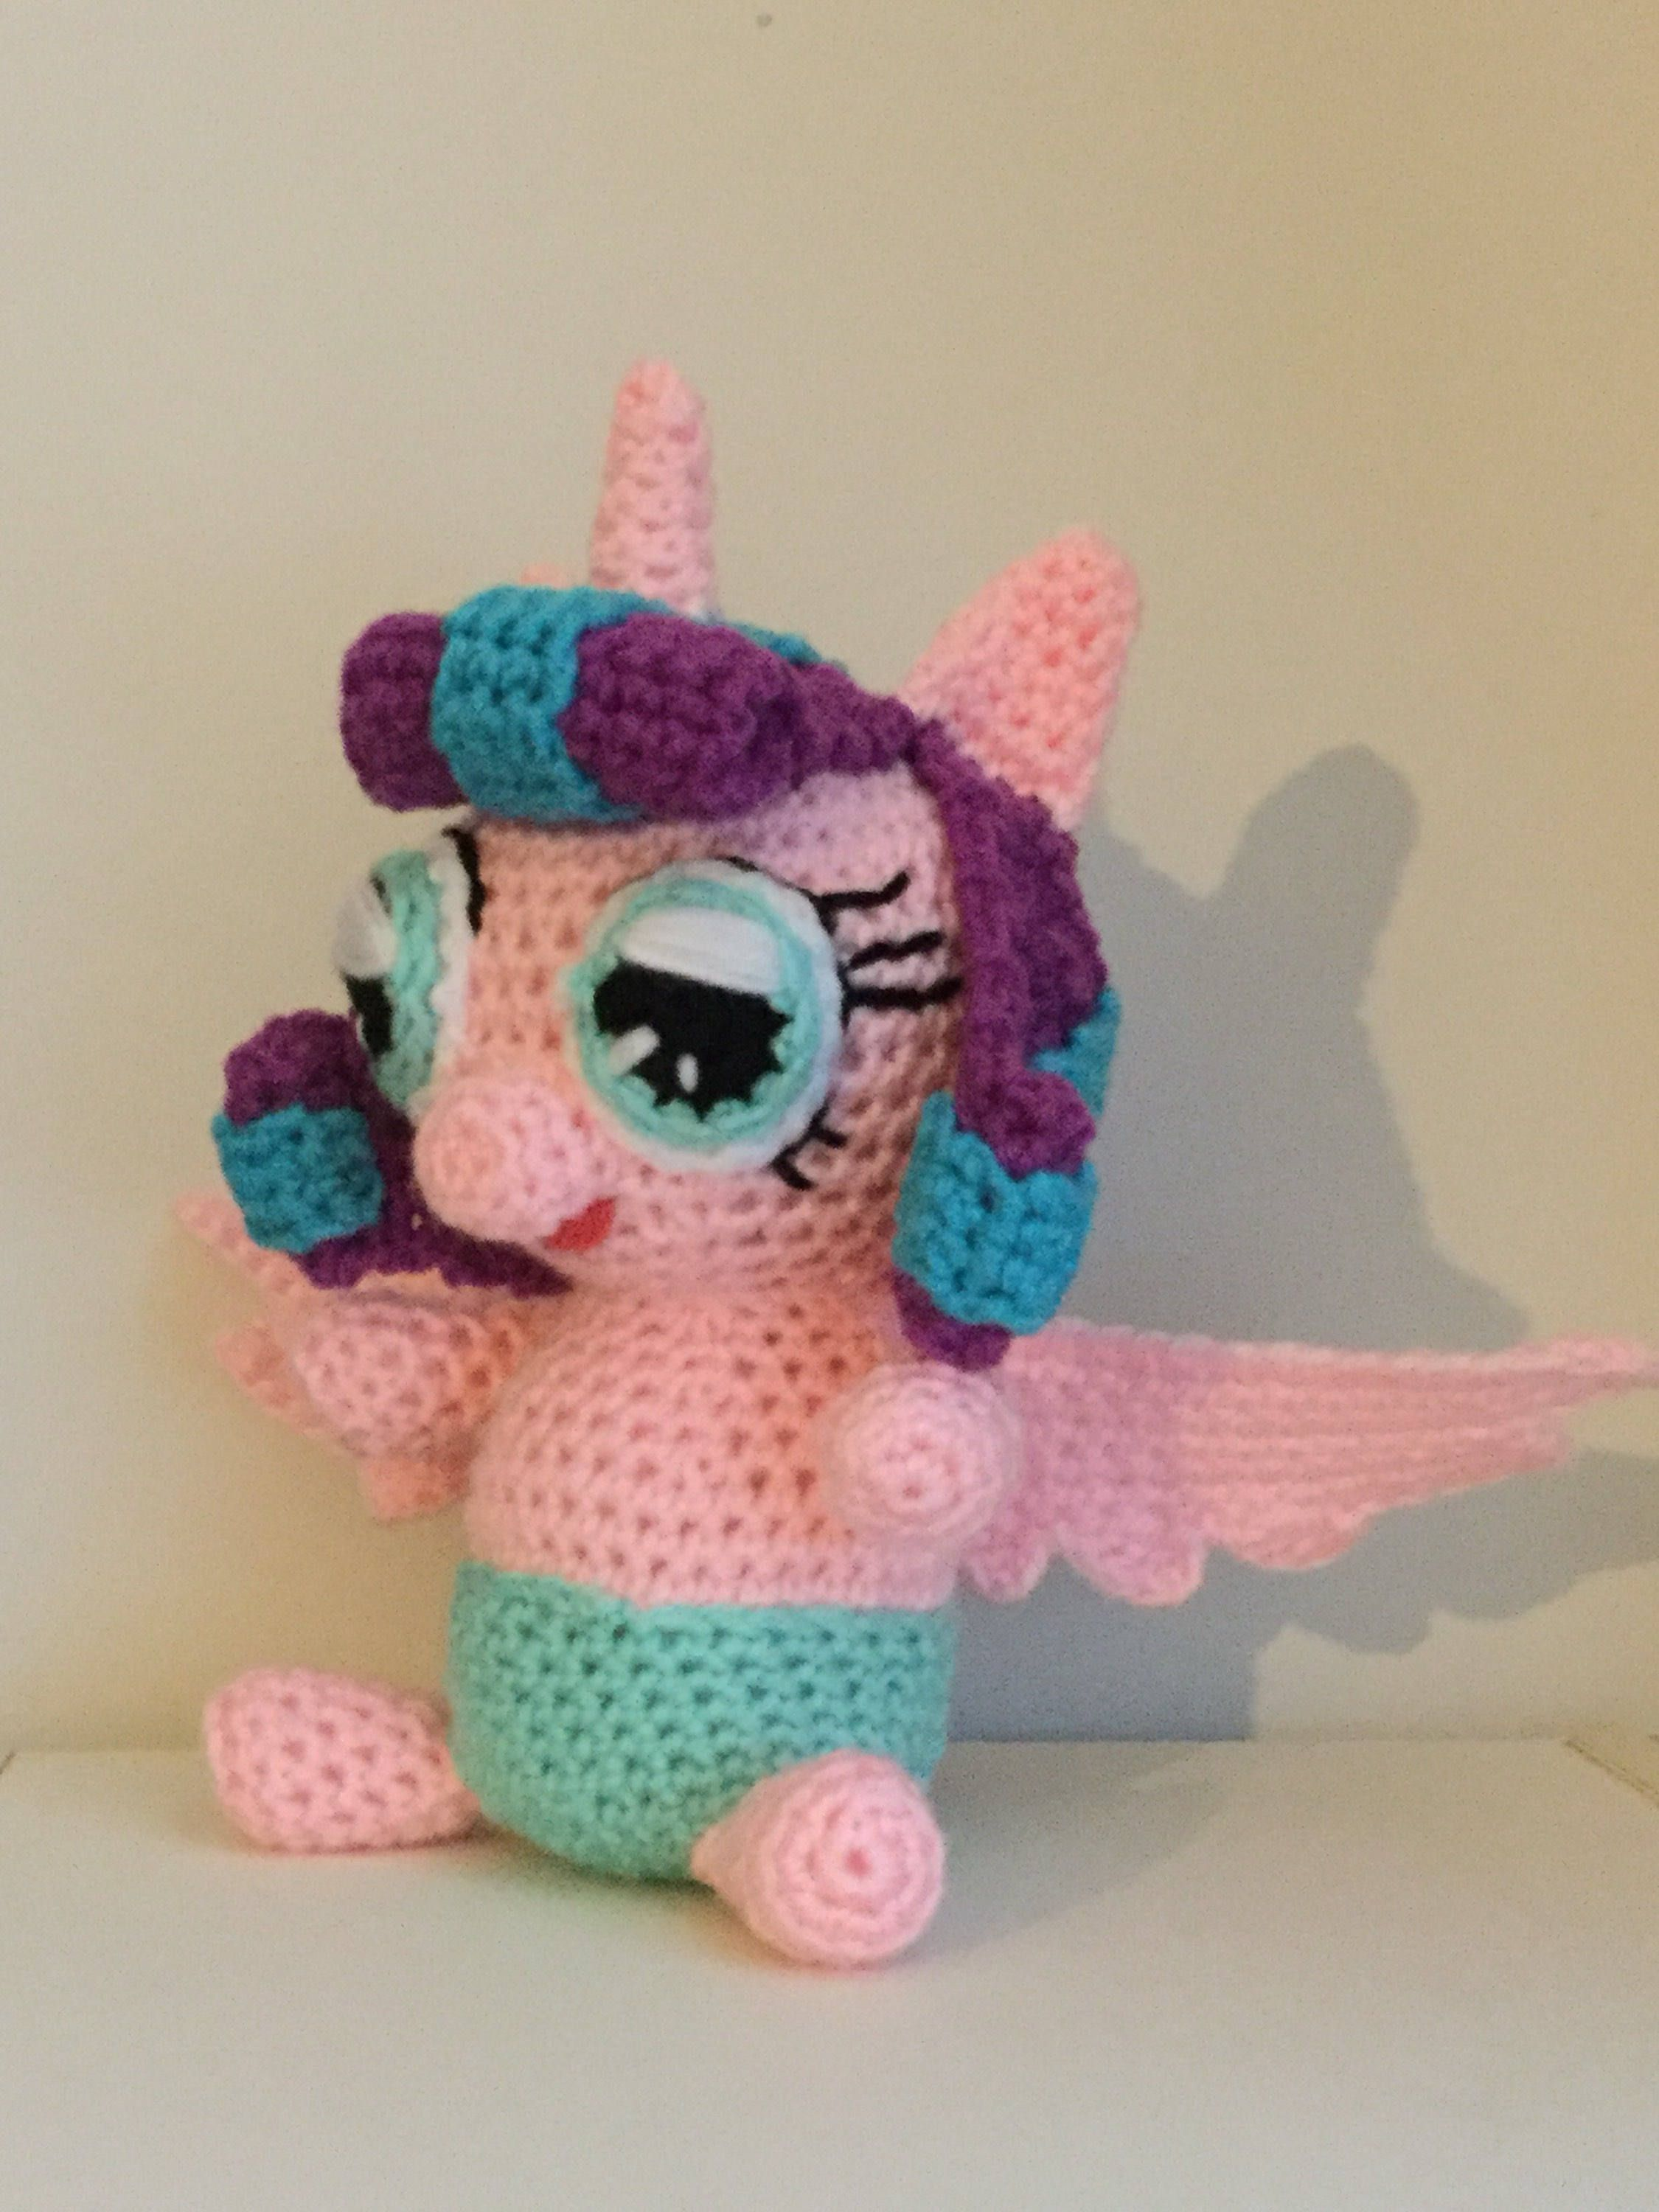 Made to order crochet amigurumi my little pony inspired baby pdf pattern for crochet amigurumi my little pony inspired flurry heart unicorn plush by shimmeree creations on ravelry bankloansurffo Gallery